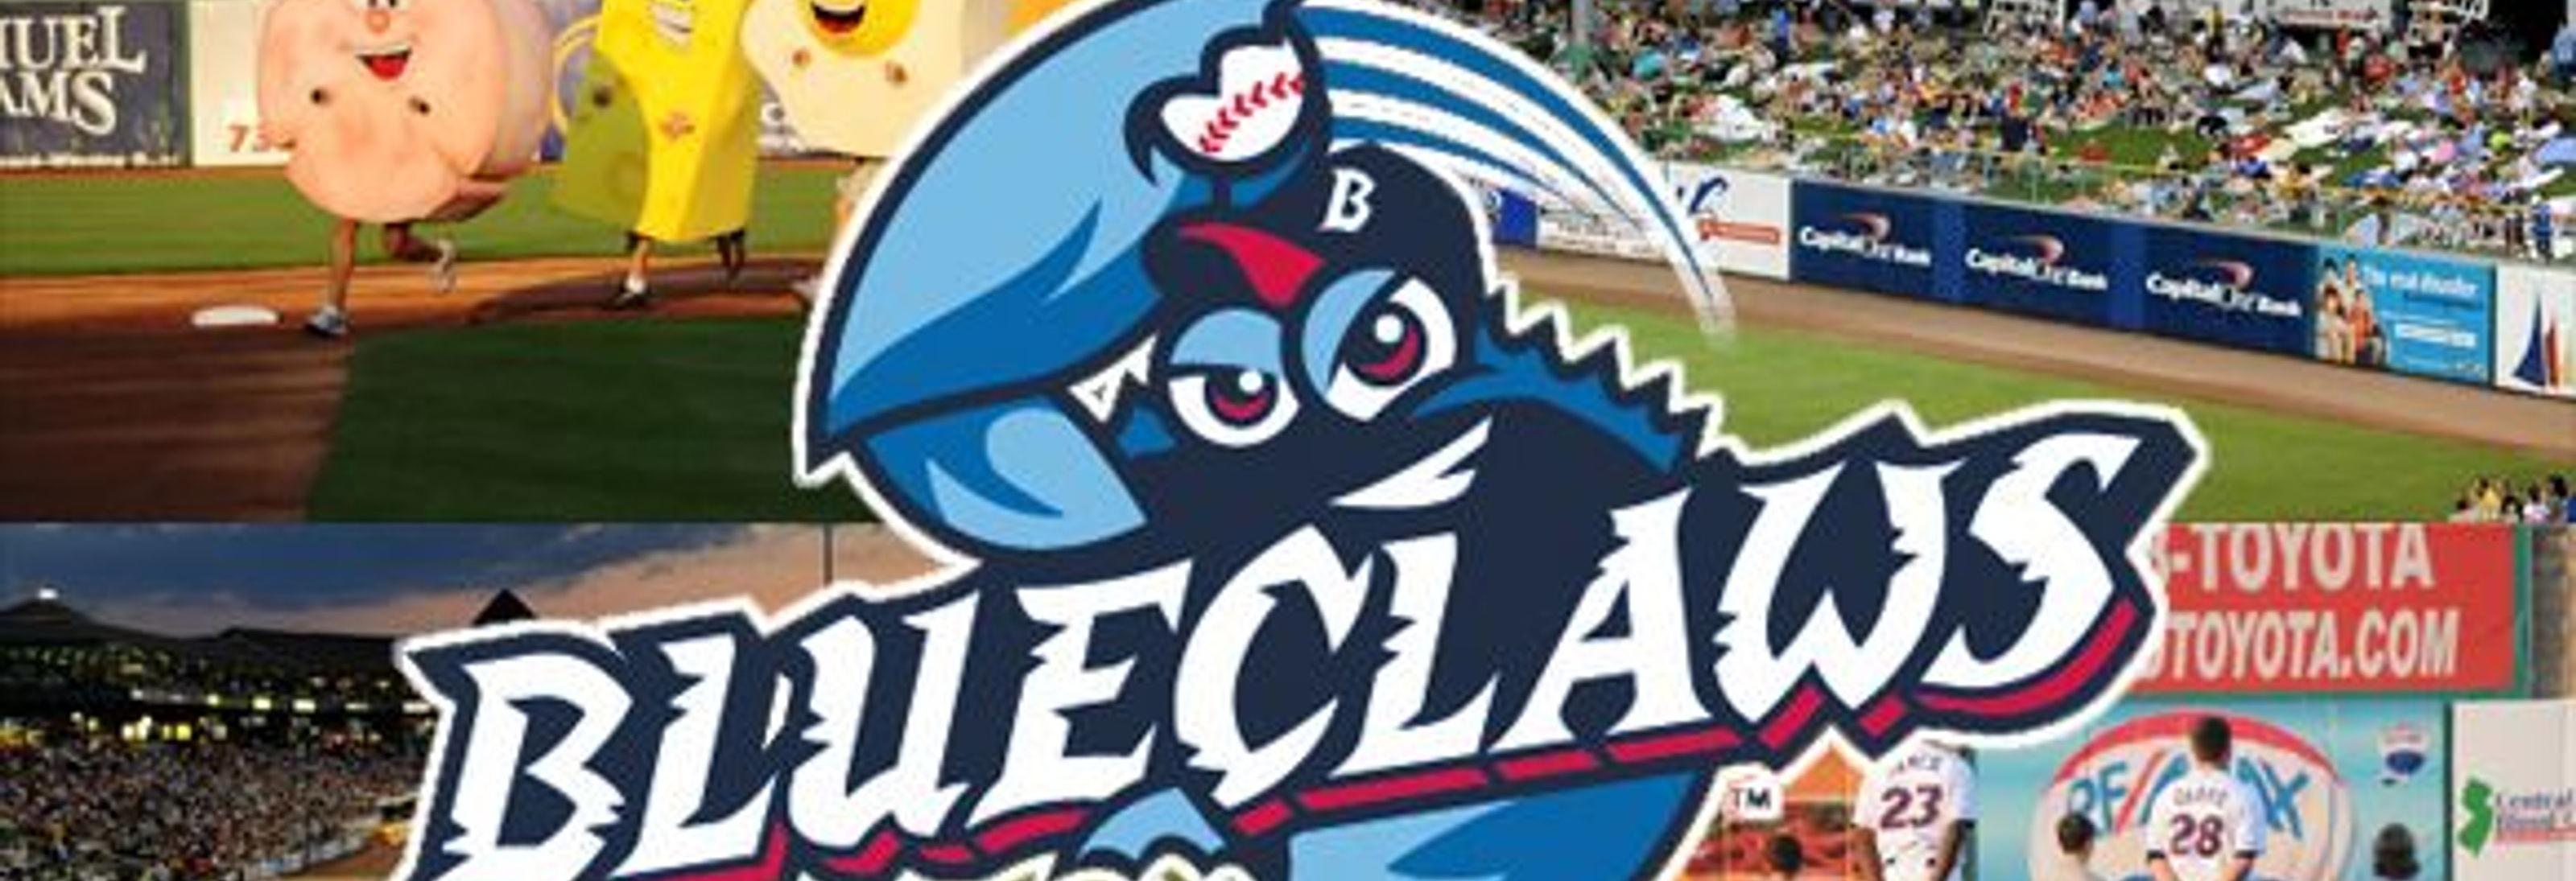 Blue Claws Banner